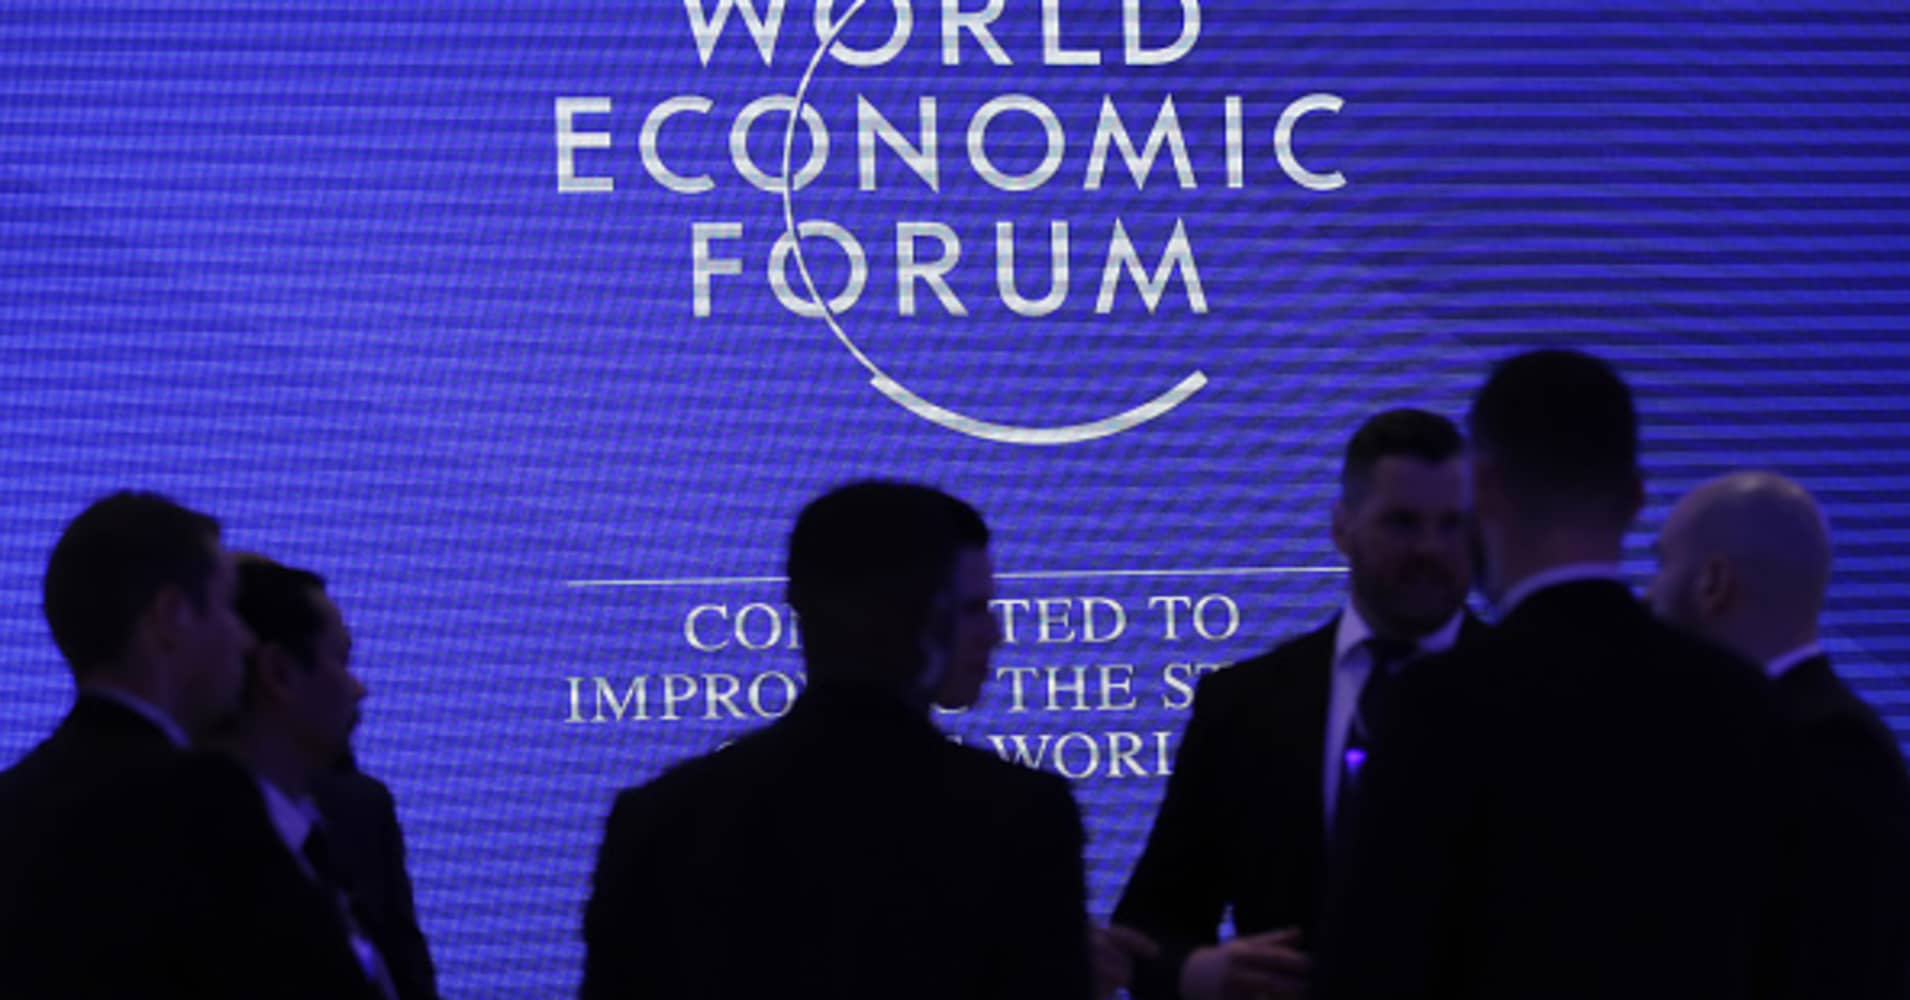 Workers listen during a briefing inside the Congress Center, the venue for the World Economic Forum (WEF), in Davos, Switzerland, on Sunday, Jan. 20, 2019.